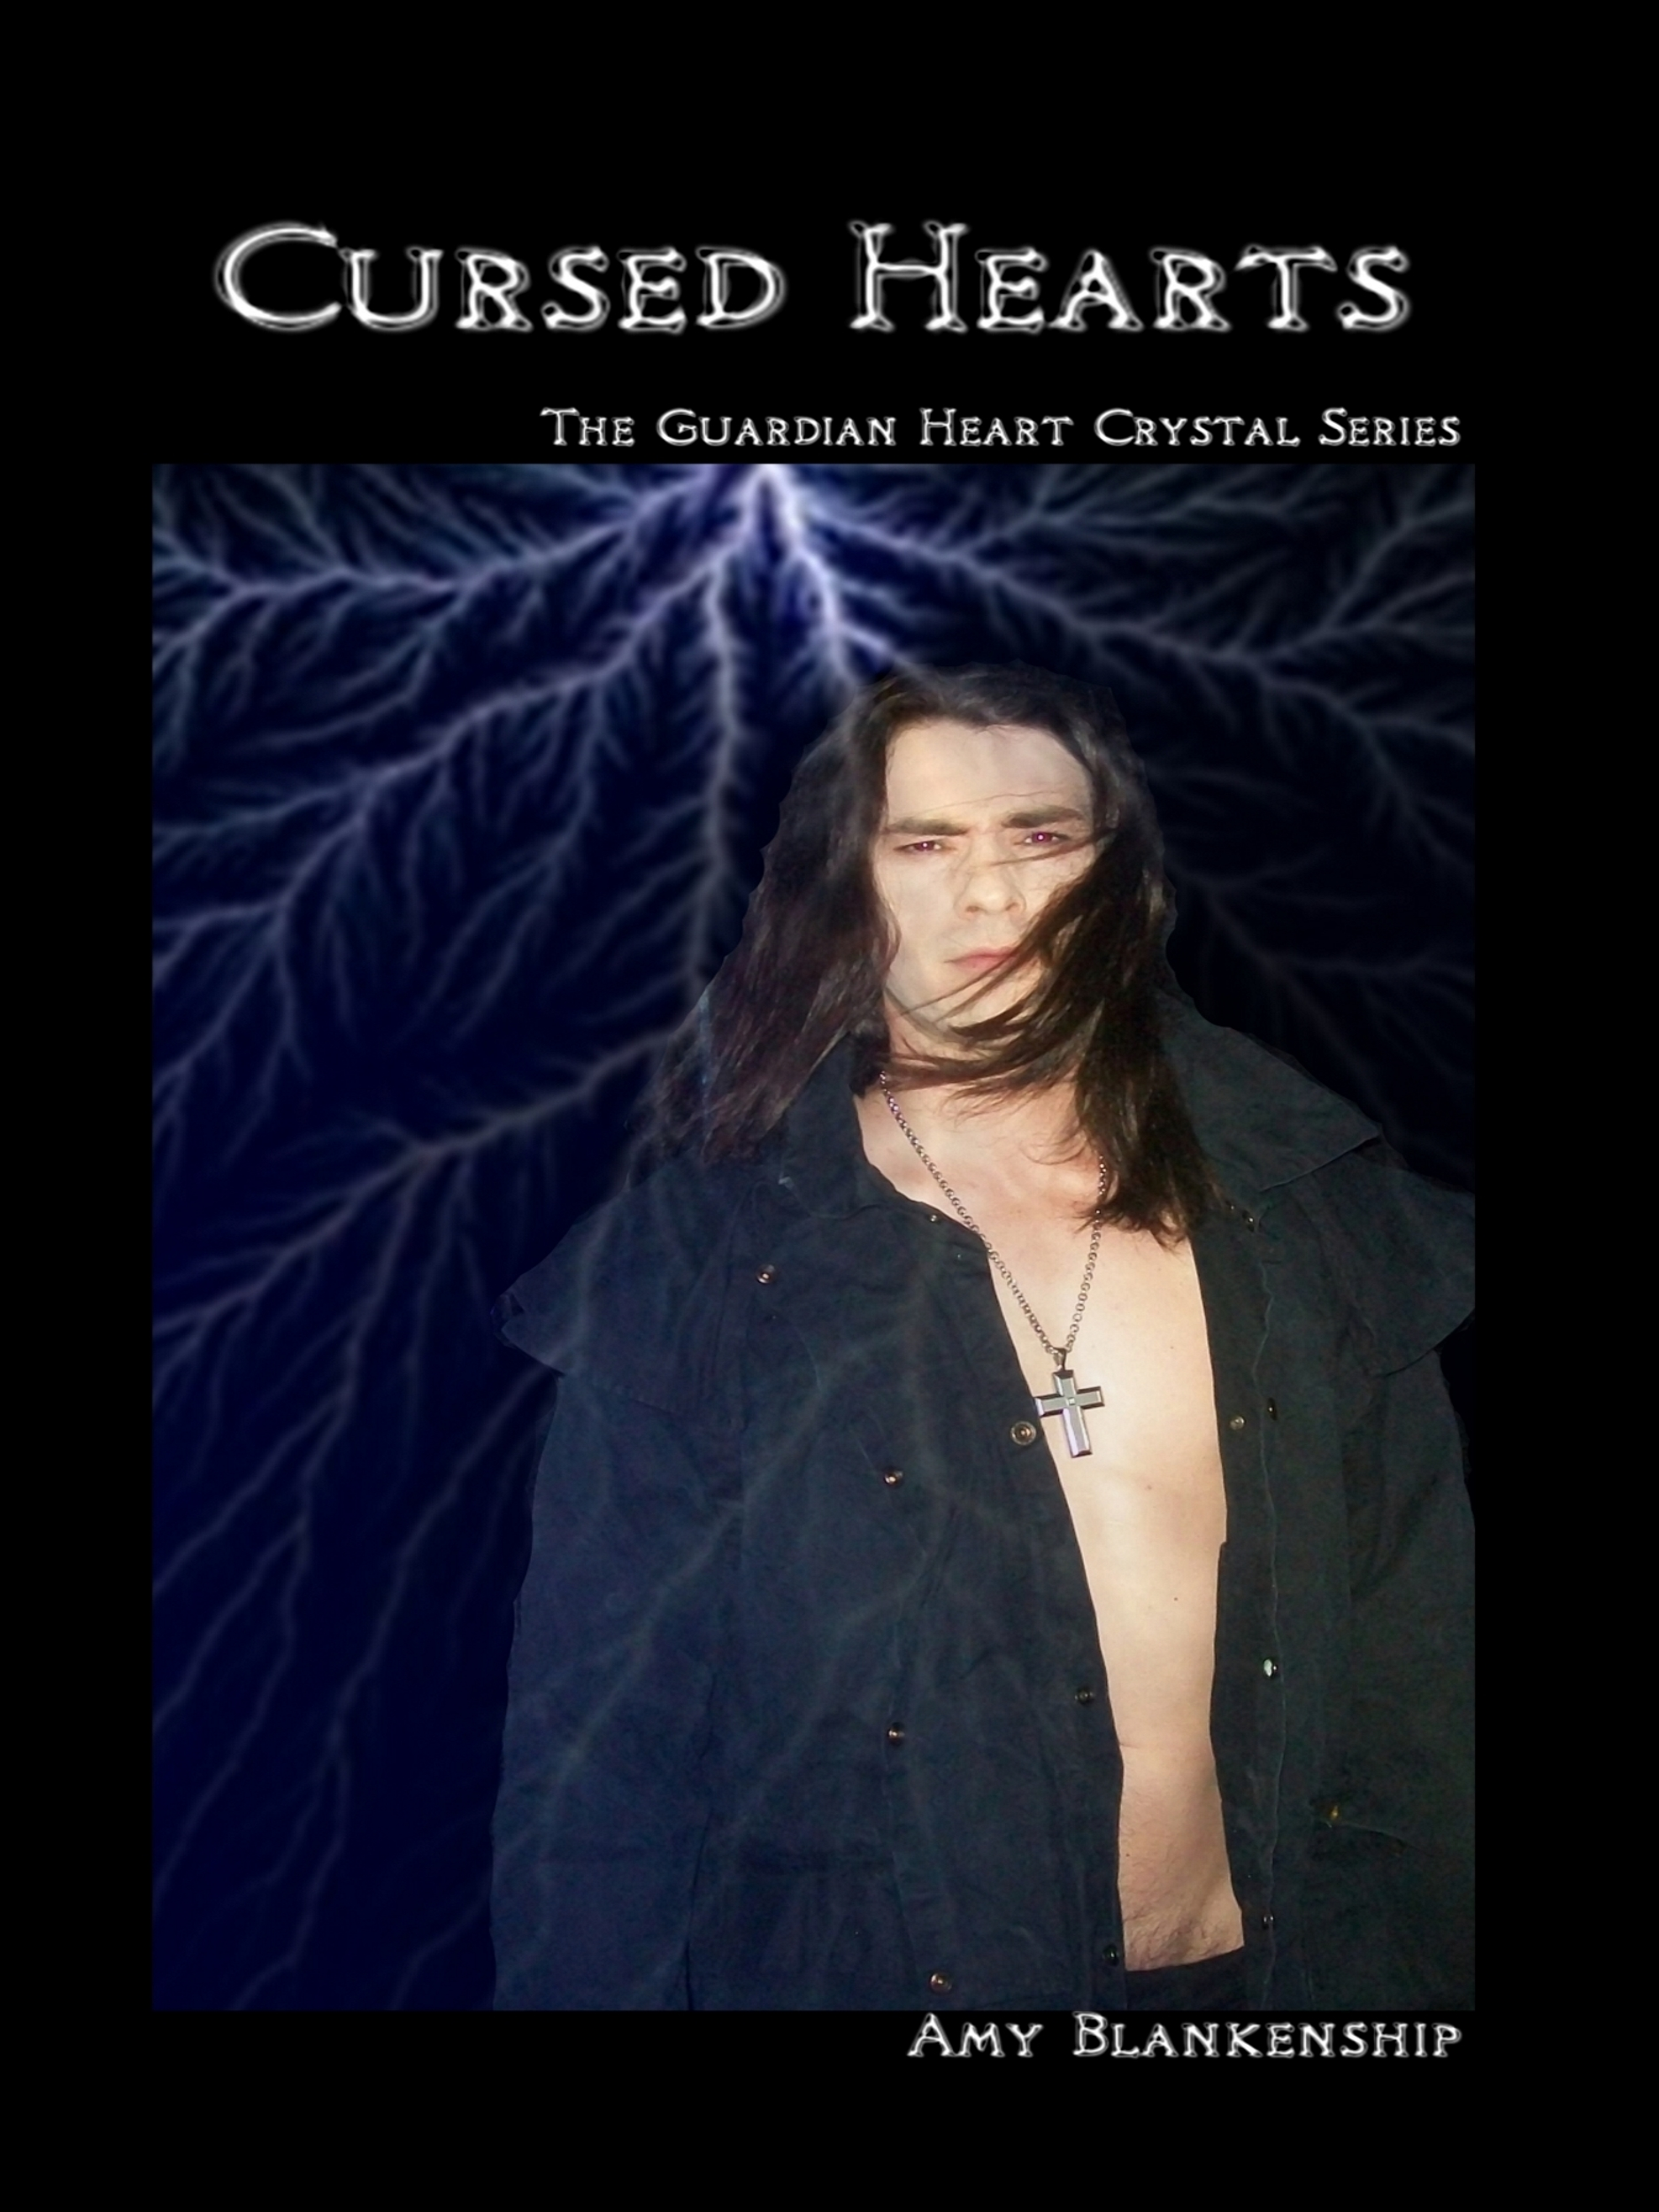 Amy Blankenship Cursed Hearts star cursed